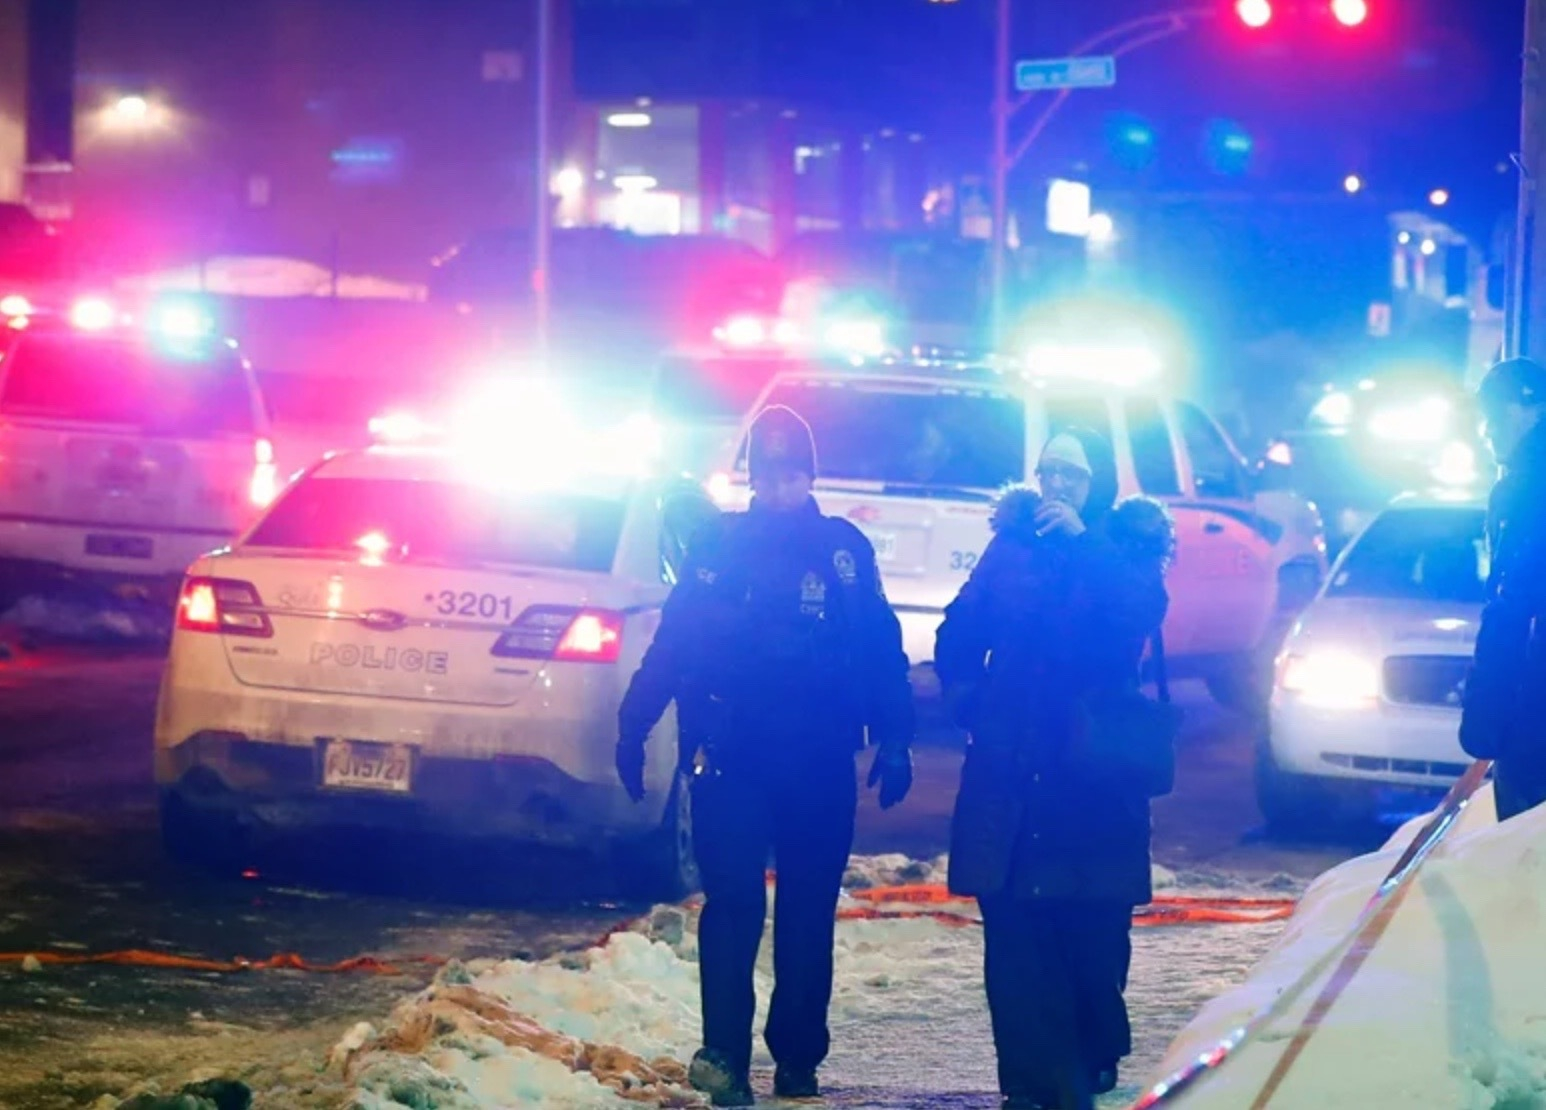 Quebec Mosque Shooting Suspect Changes Mind, Pleads Guilty